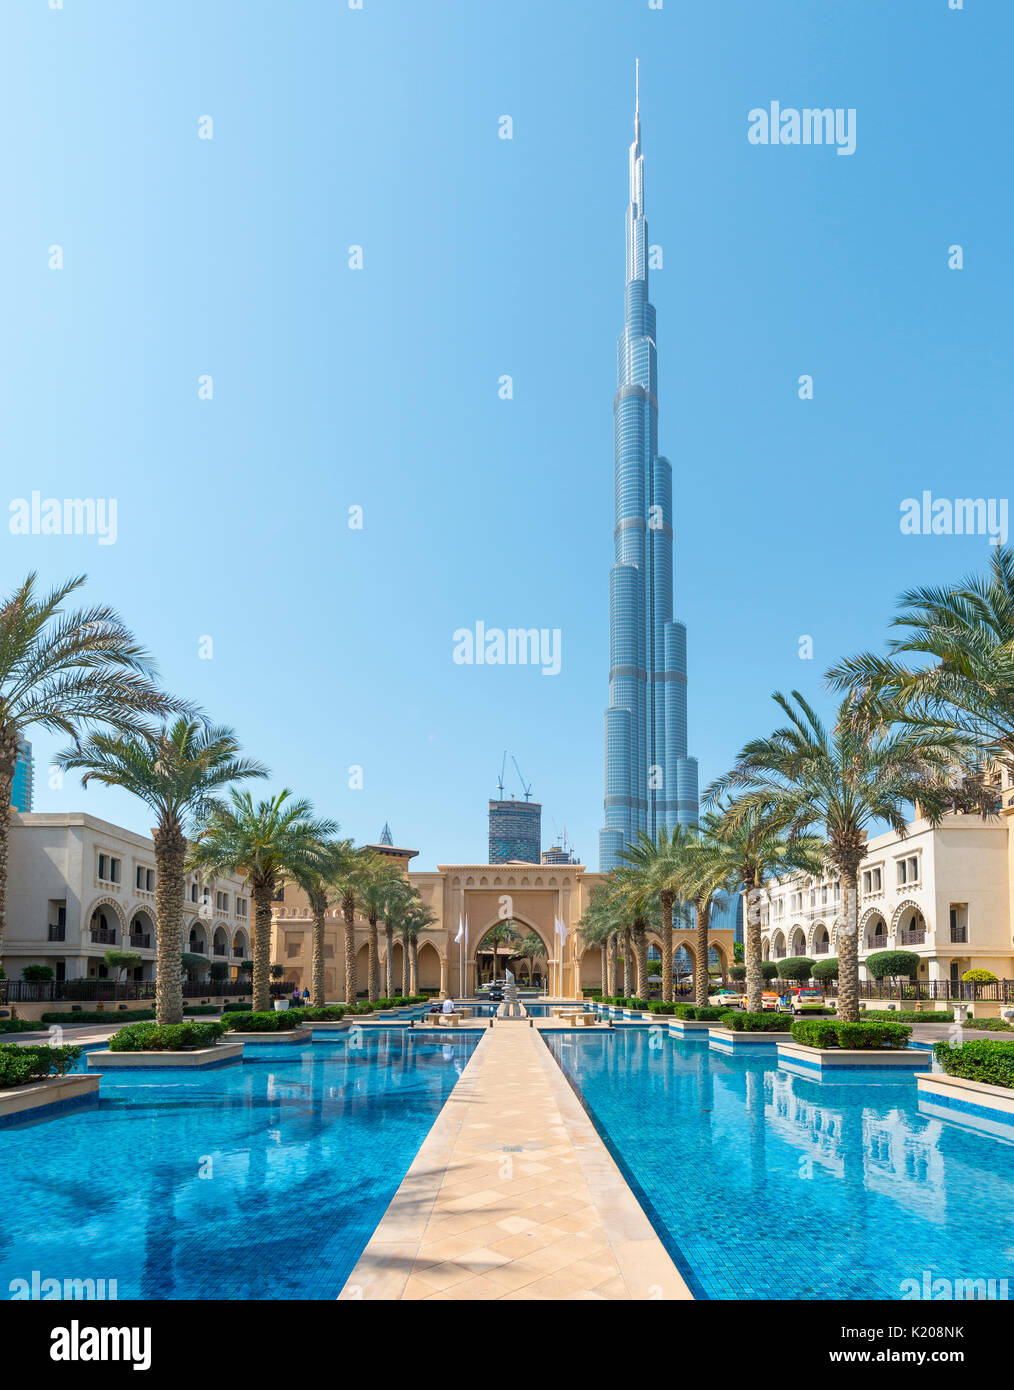 Palace city hotel, palm trees and fountains, at back Burj Khalifa, Dubai, Emirate Dubai, United Arab Emirates - Stock Image